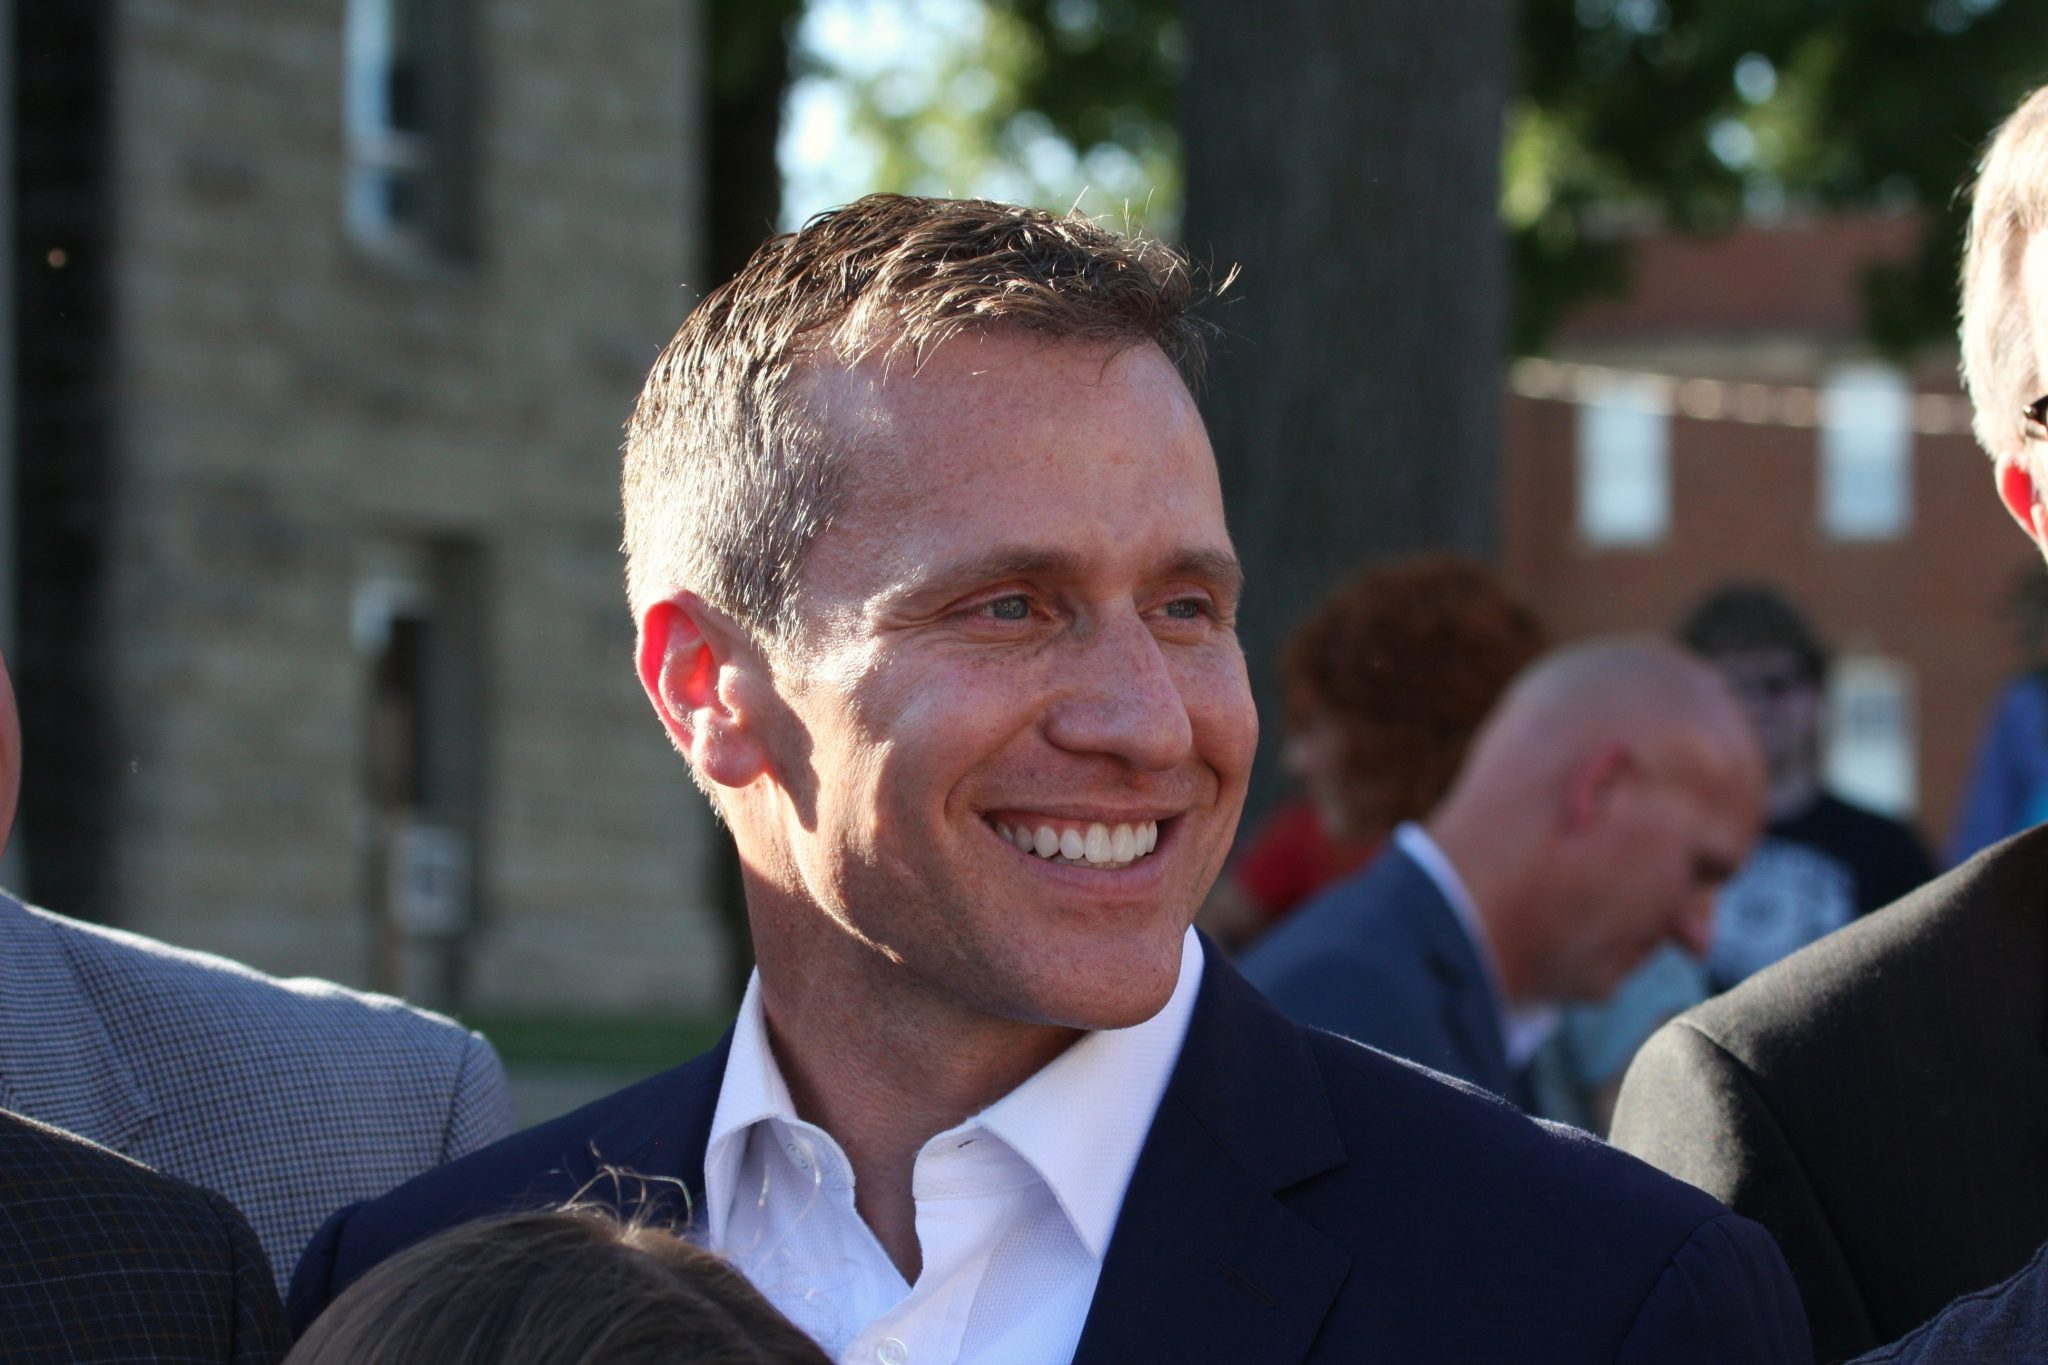 Missouri Governor Greitens Promotes Tax Relief for Working Families on State Tour